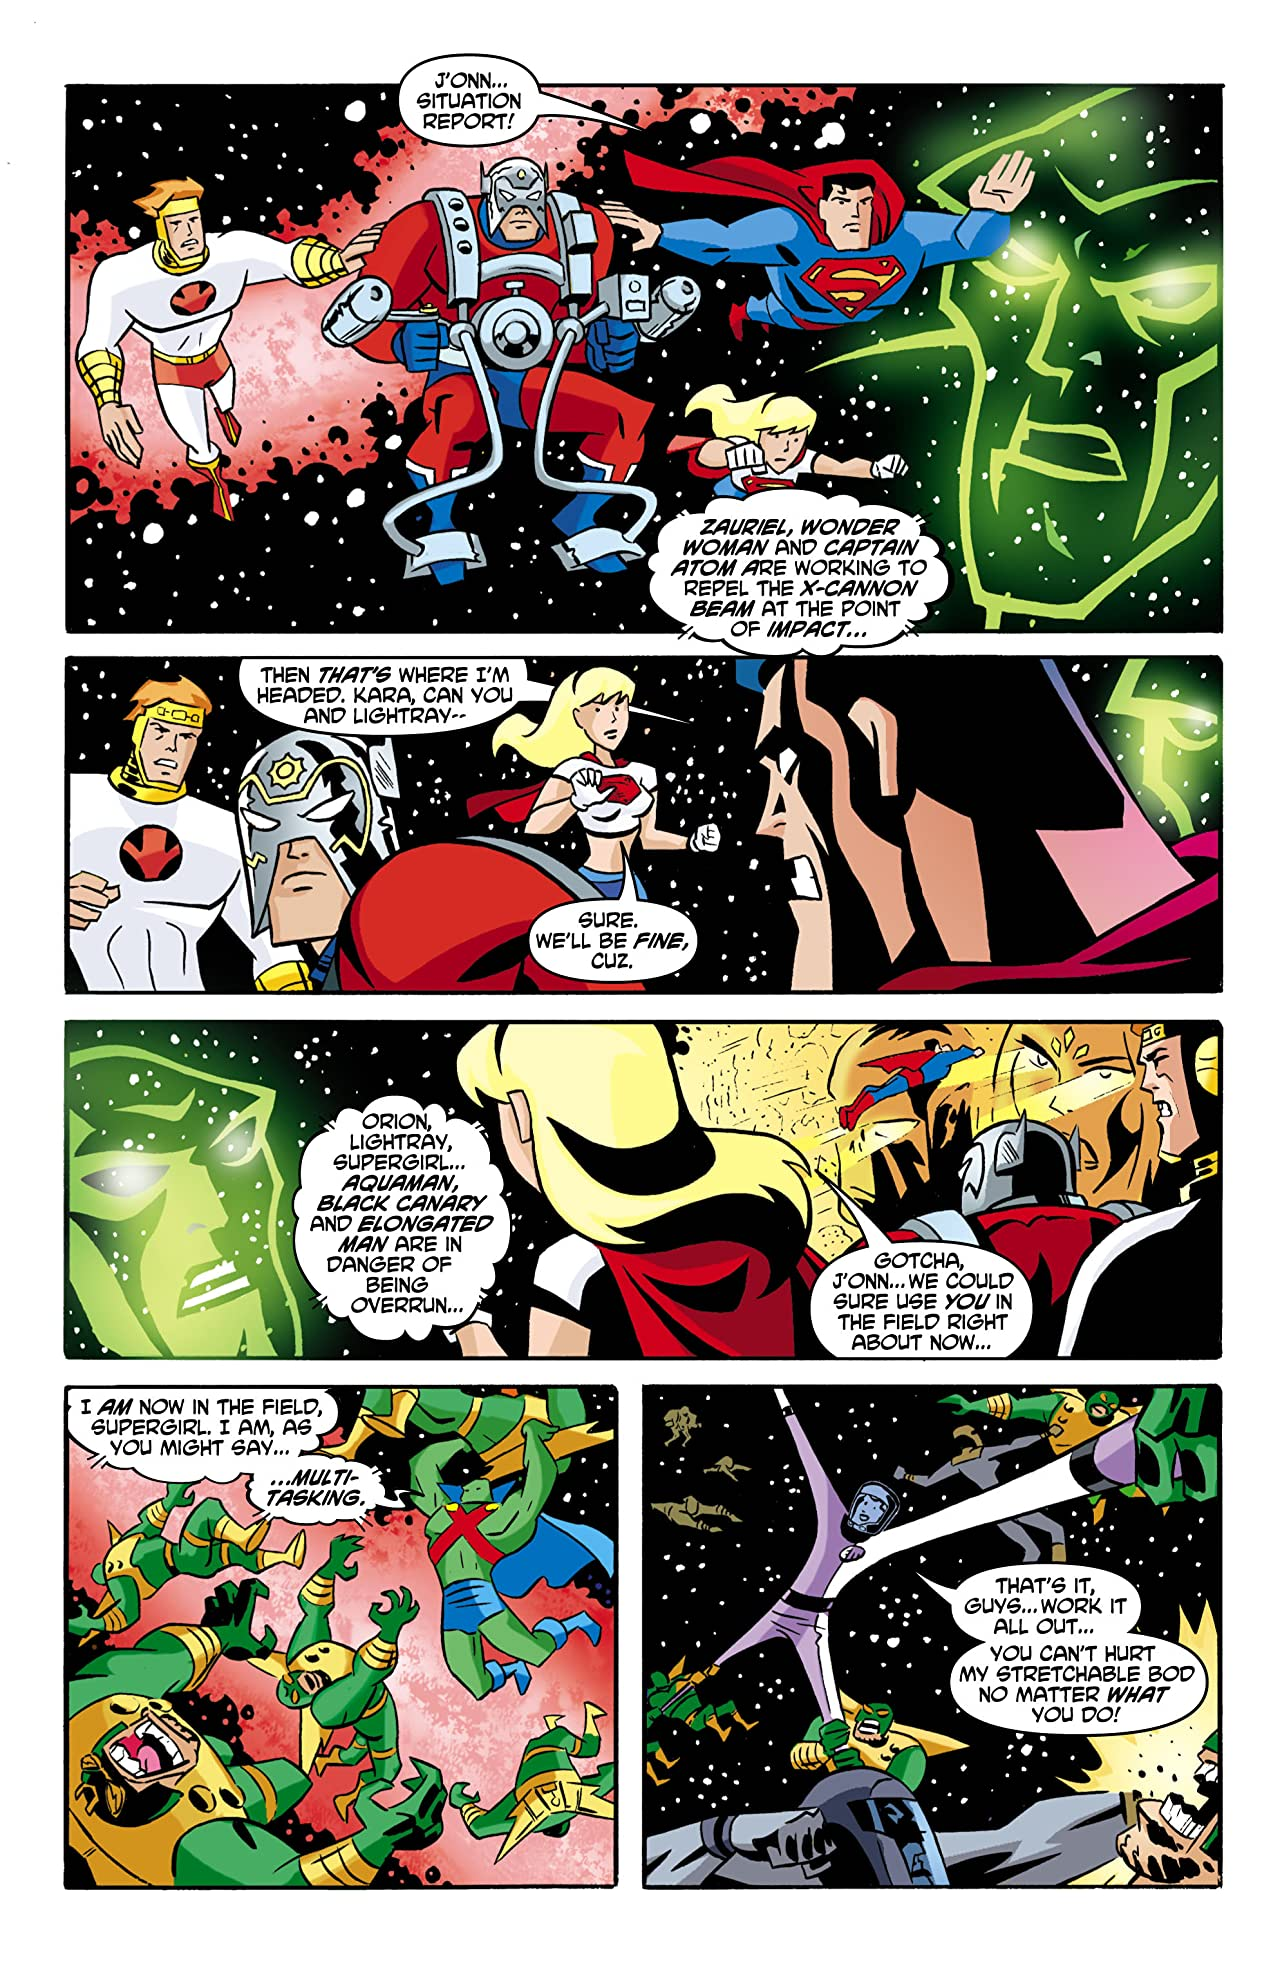 Justice League Unlimited #7